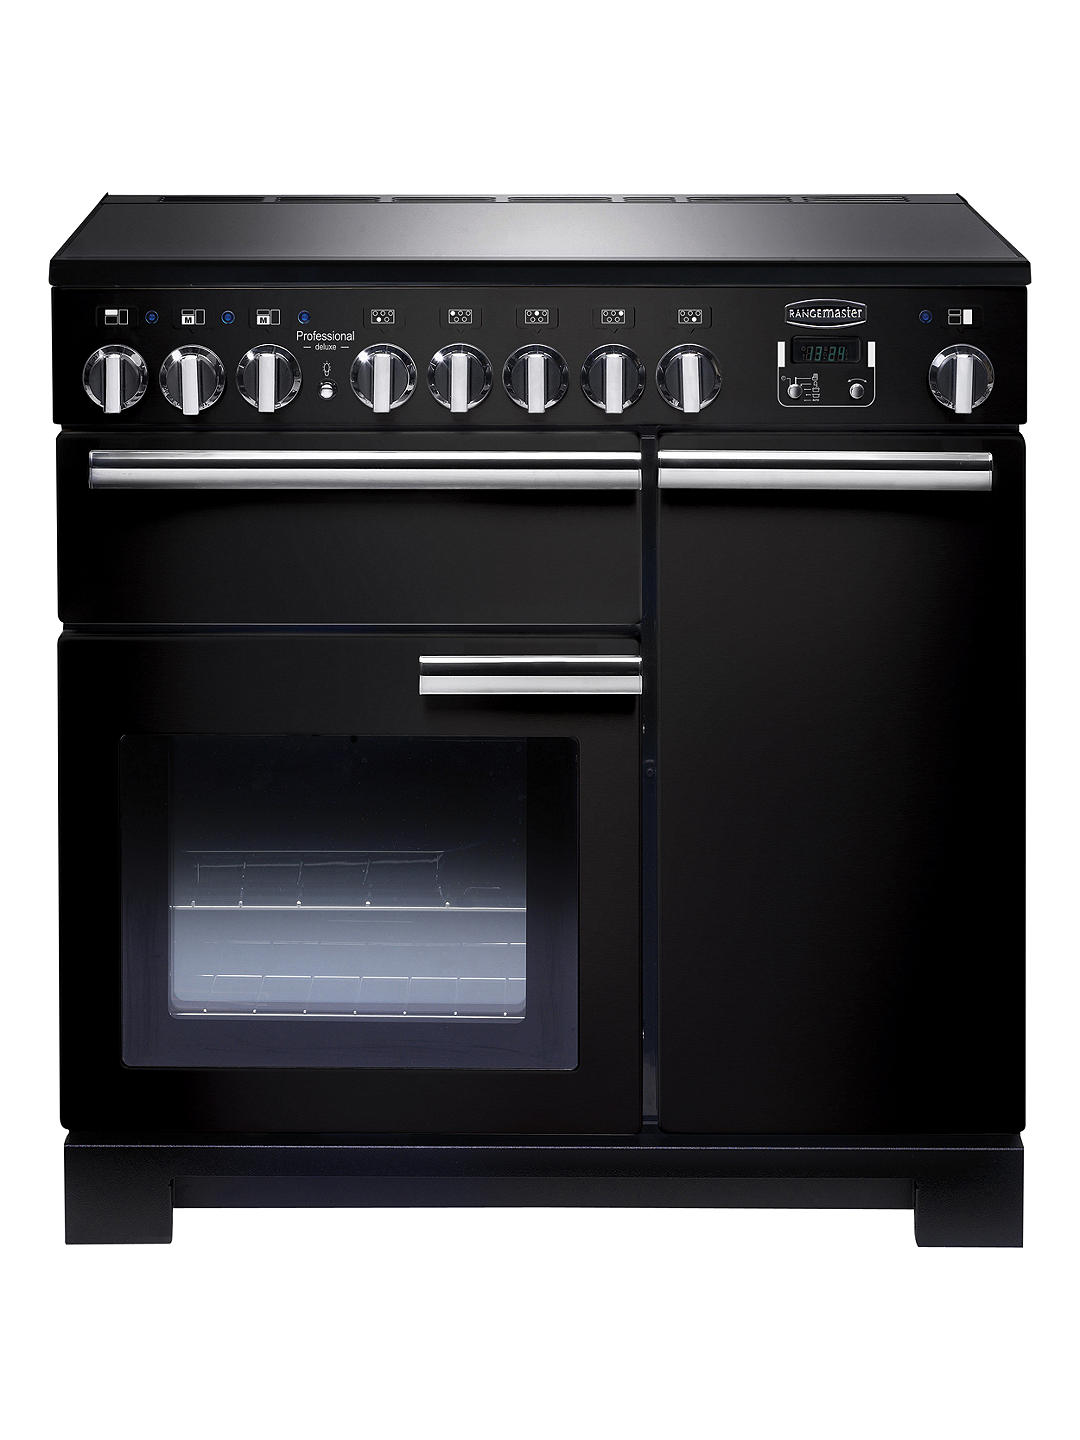 Buy Rangemaster Professional Deluxe 90 Induction Hob Range Cooker, Black/Chrome Trim Online at johnlewis.com